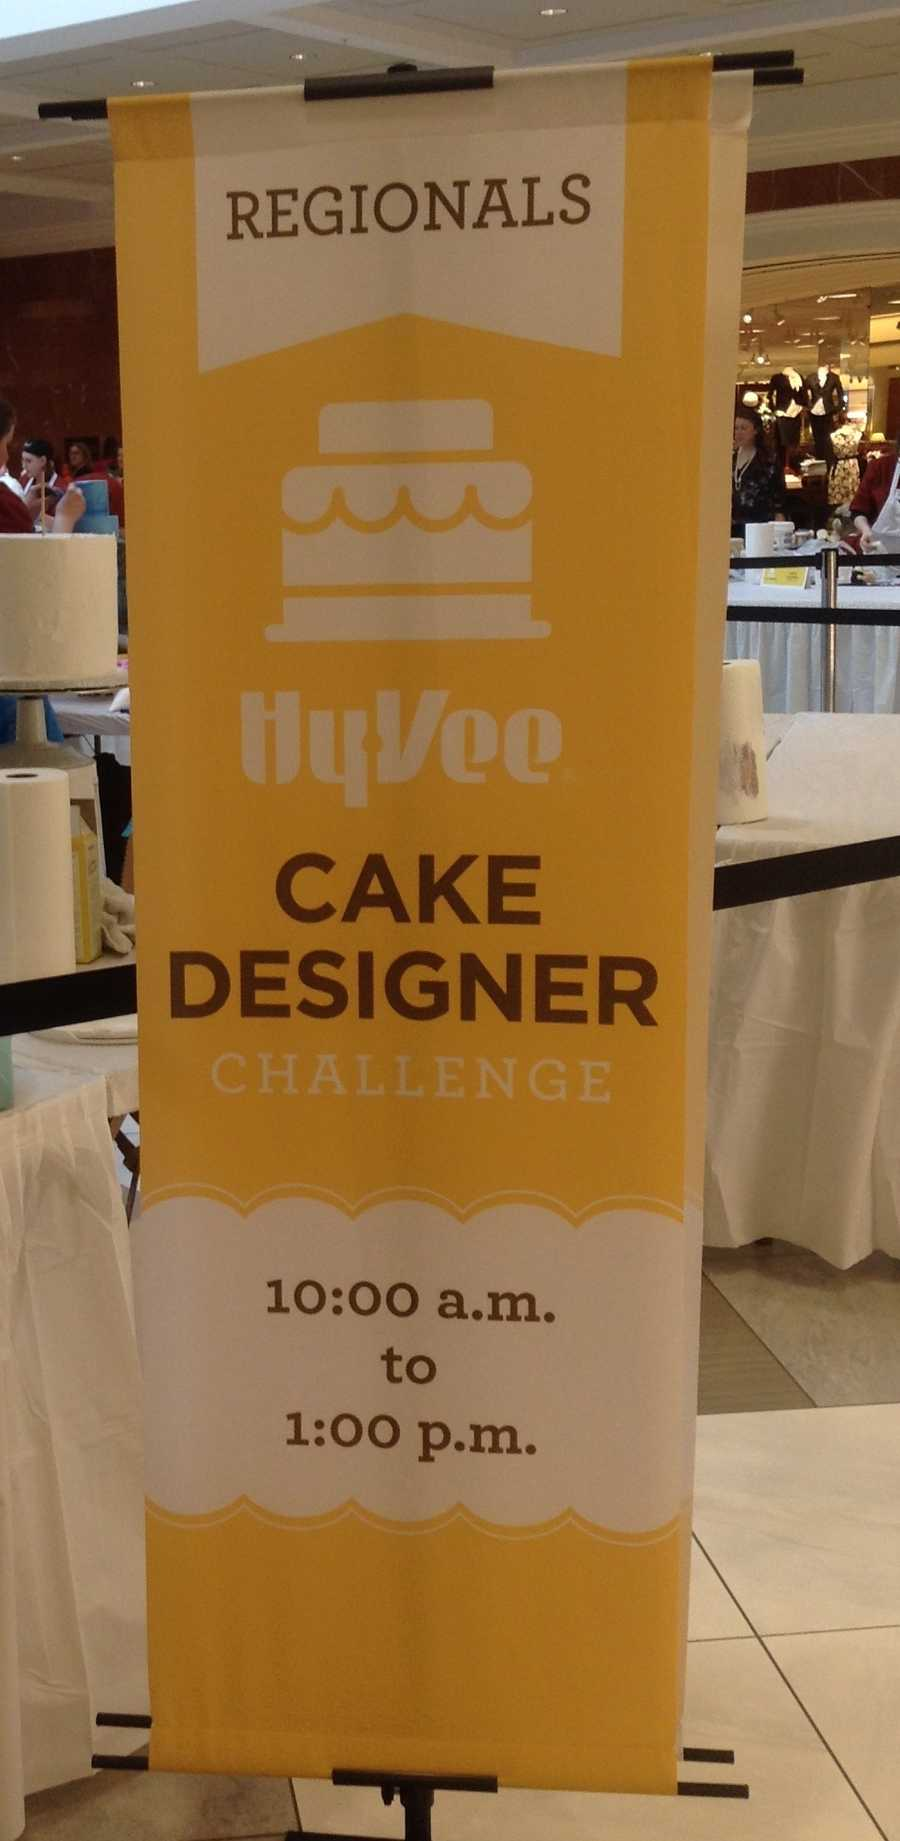 Hy-Vee bakers put their skills to the test for the Omaha semifinal cake designer challenge. They had three hours to perfect two cakes. Here are some of the delicious entries.